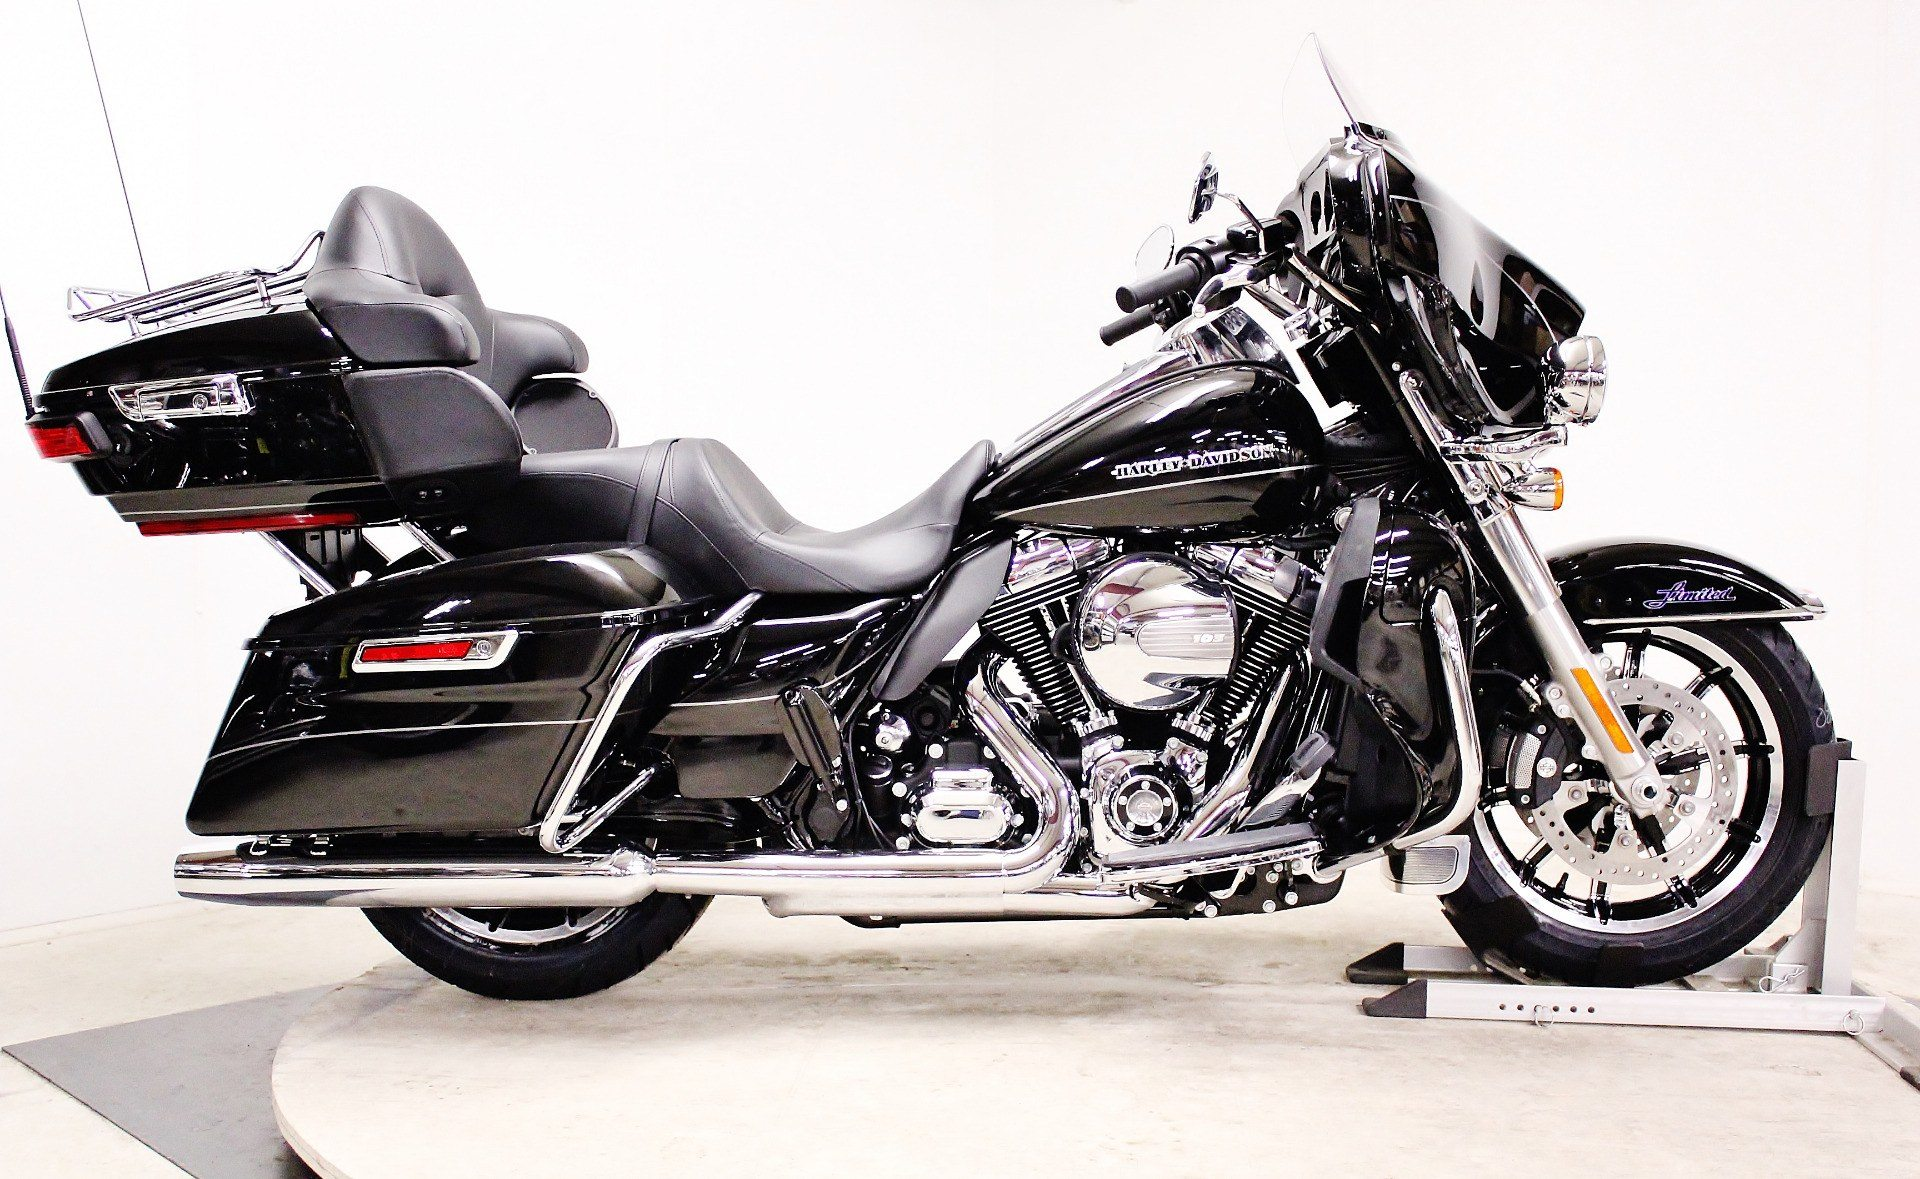 2016 harley davidson ultra limited low for sale pittsfield ma 519541. Black Bedroom Furniture Sets. Home Design Ideas